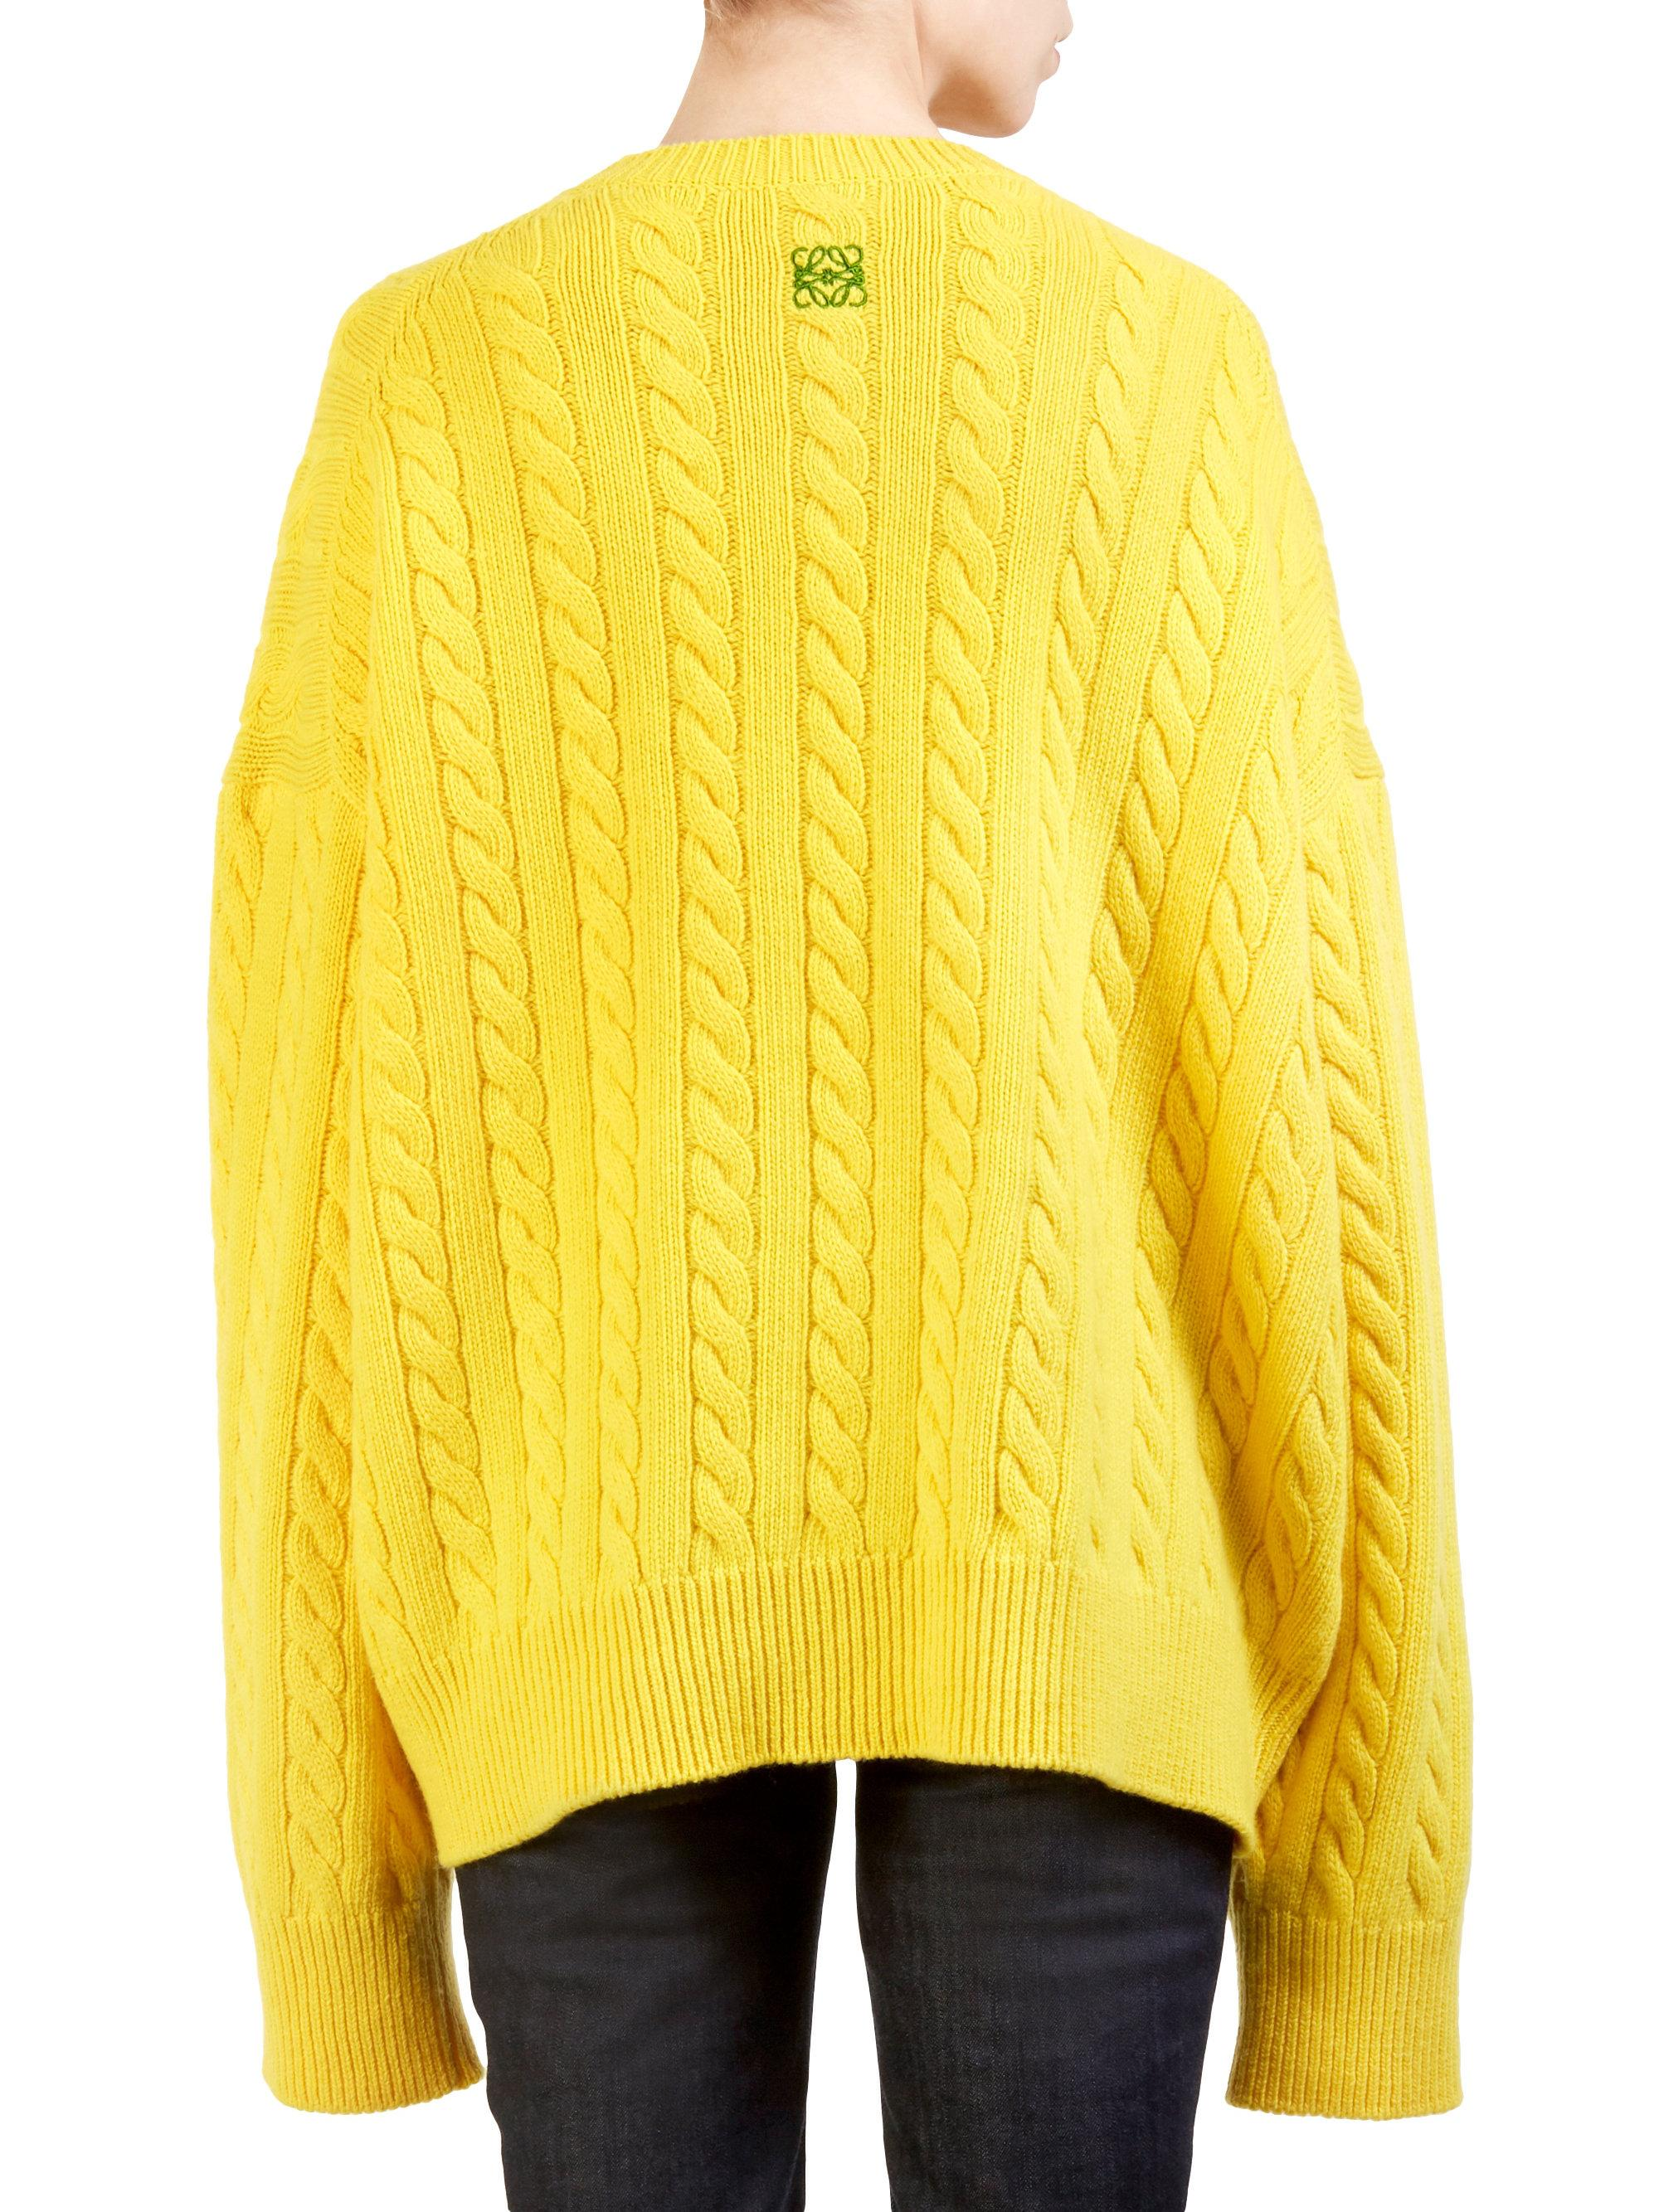 61223d0131 Loewe Cableknit Wool Sweater in Yellow - Lyst